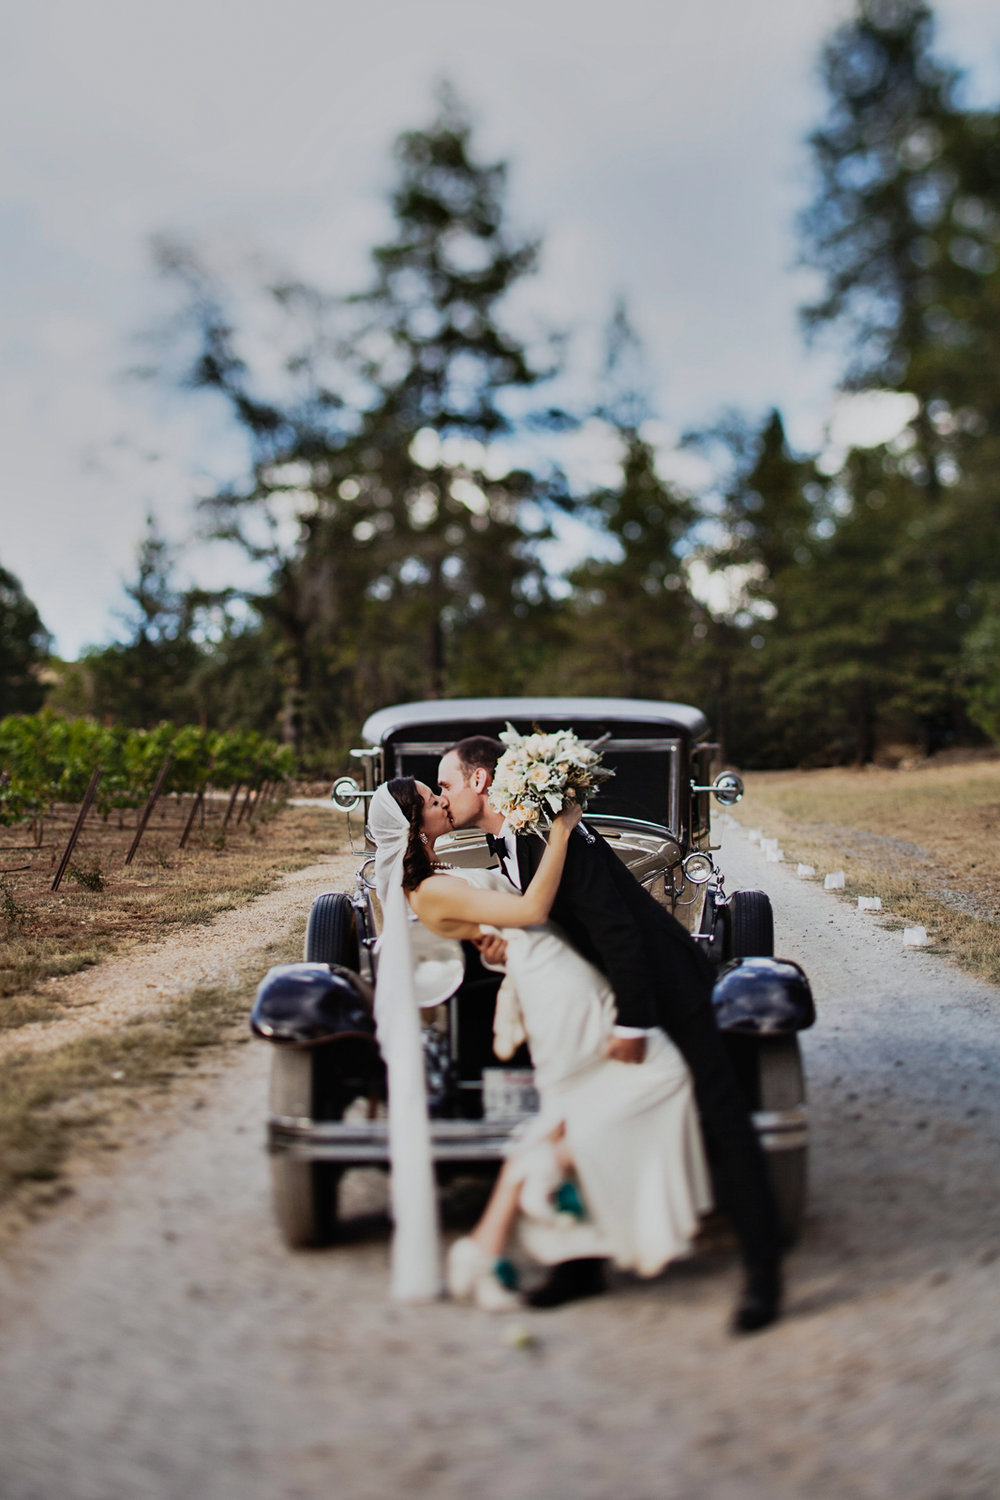 miraflores_winery_wedding_photography_ian_melissa_ebony_siovhan_bokeh_photography_44.jpg